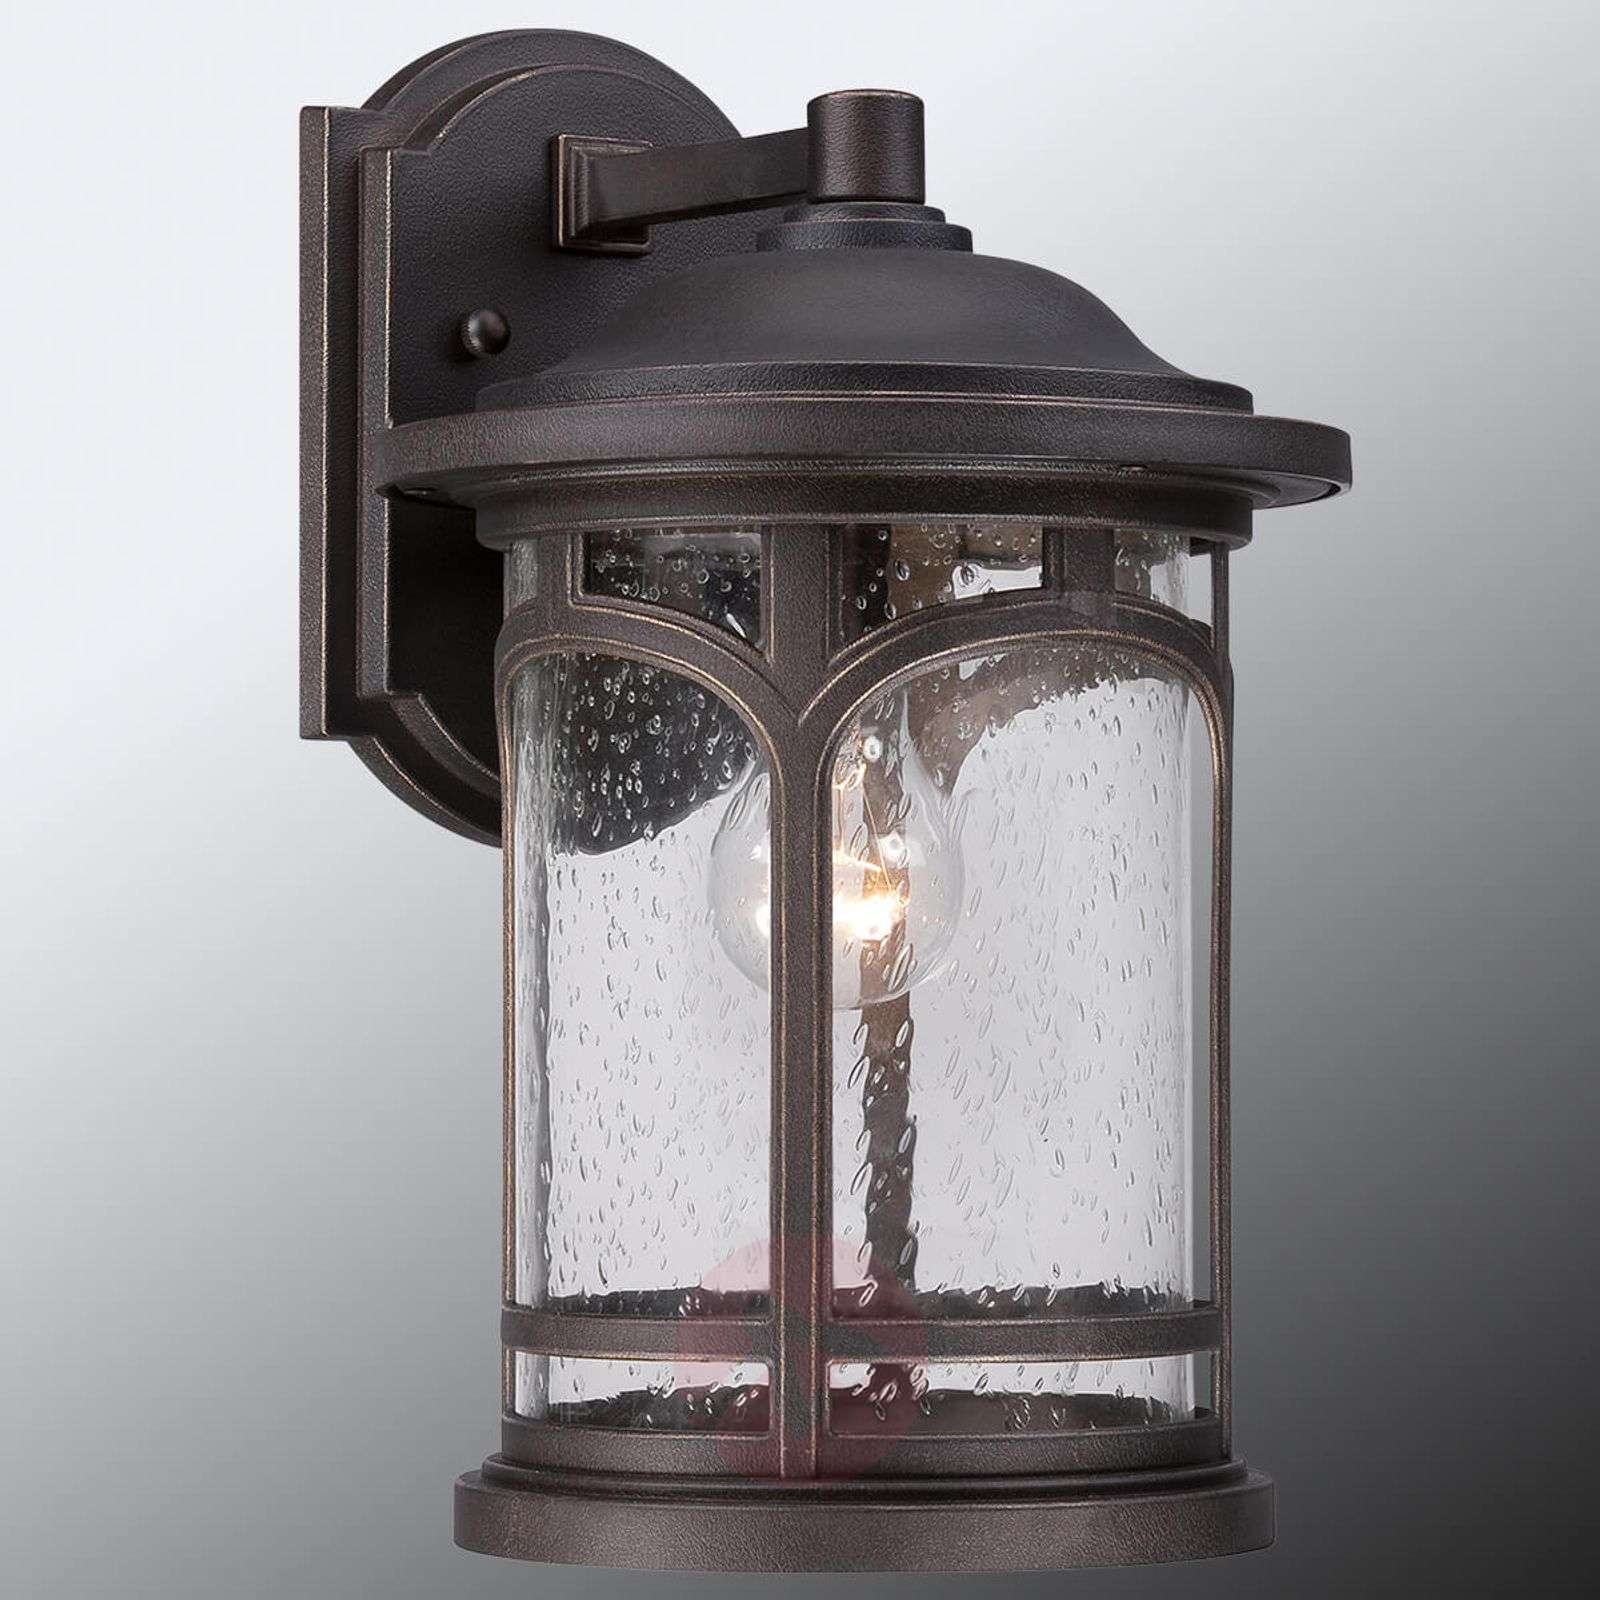 Robust Marblehead outdoor wall lamp-3048823-01